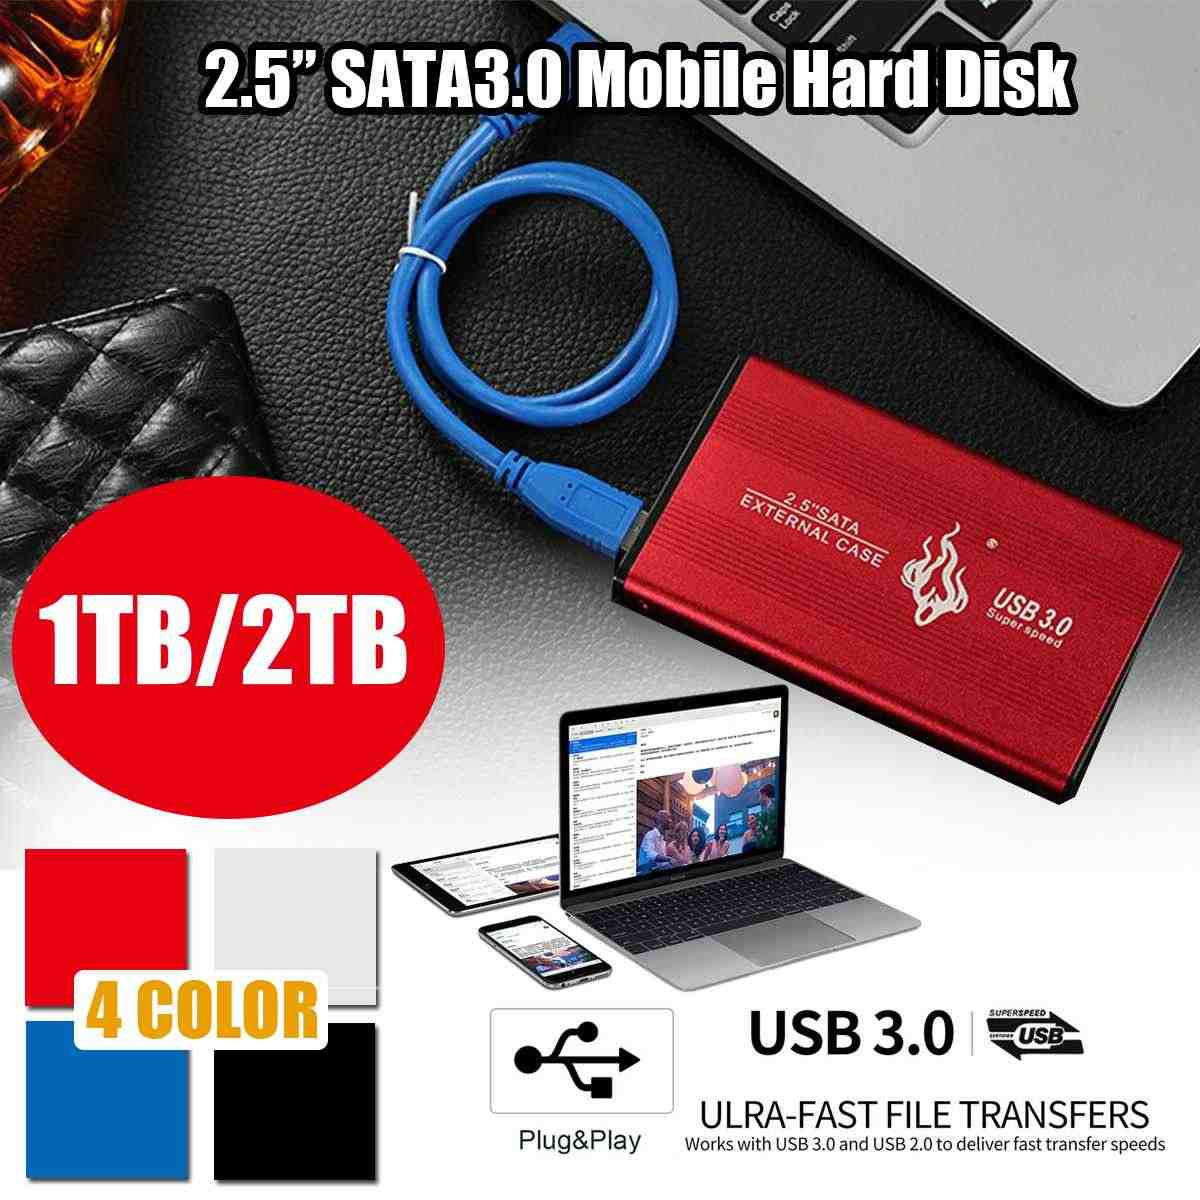 HTS-YP005 disco duro externo SATA 2,5 de 3,0 pulgadas USB 3,0 Disco Duro móvil 1 TB/2 TB 6pf para Mac PC TV box